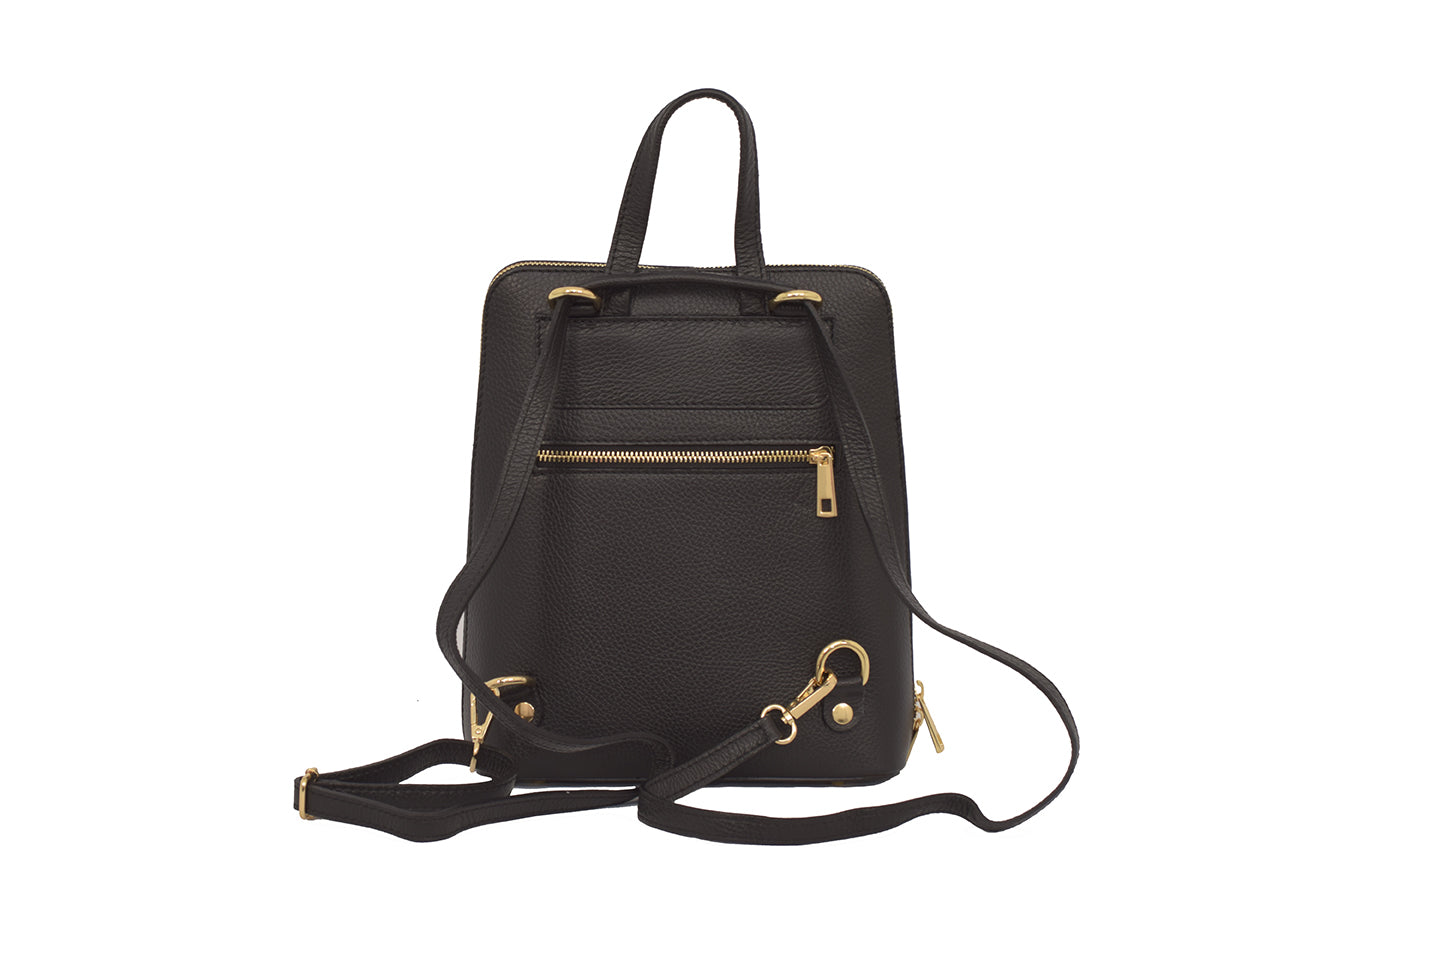 Black 3 in 1 - backpack / rucksack, cross body bag, and hand bag in one.